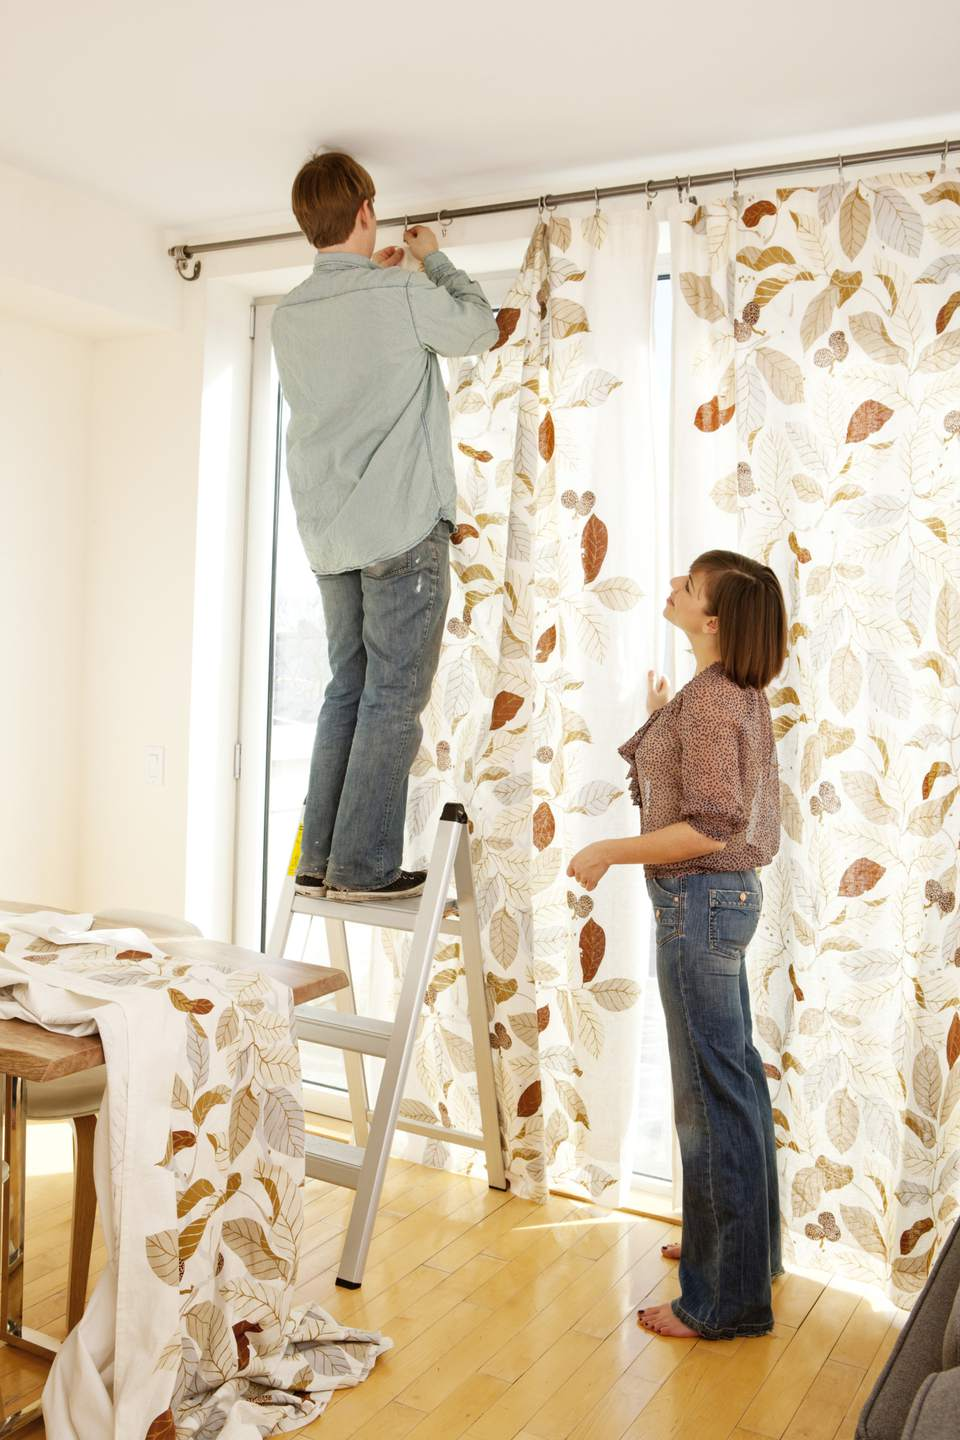 How To Make Your Mobile Home Ceilings Appear Taller